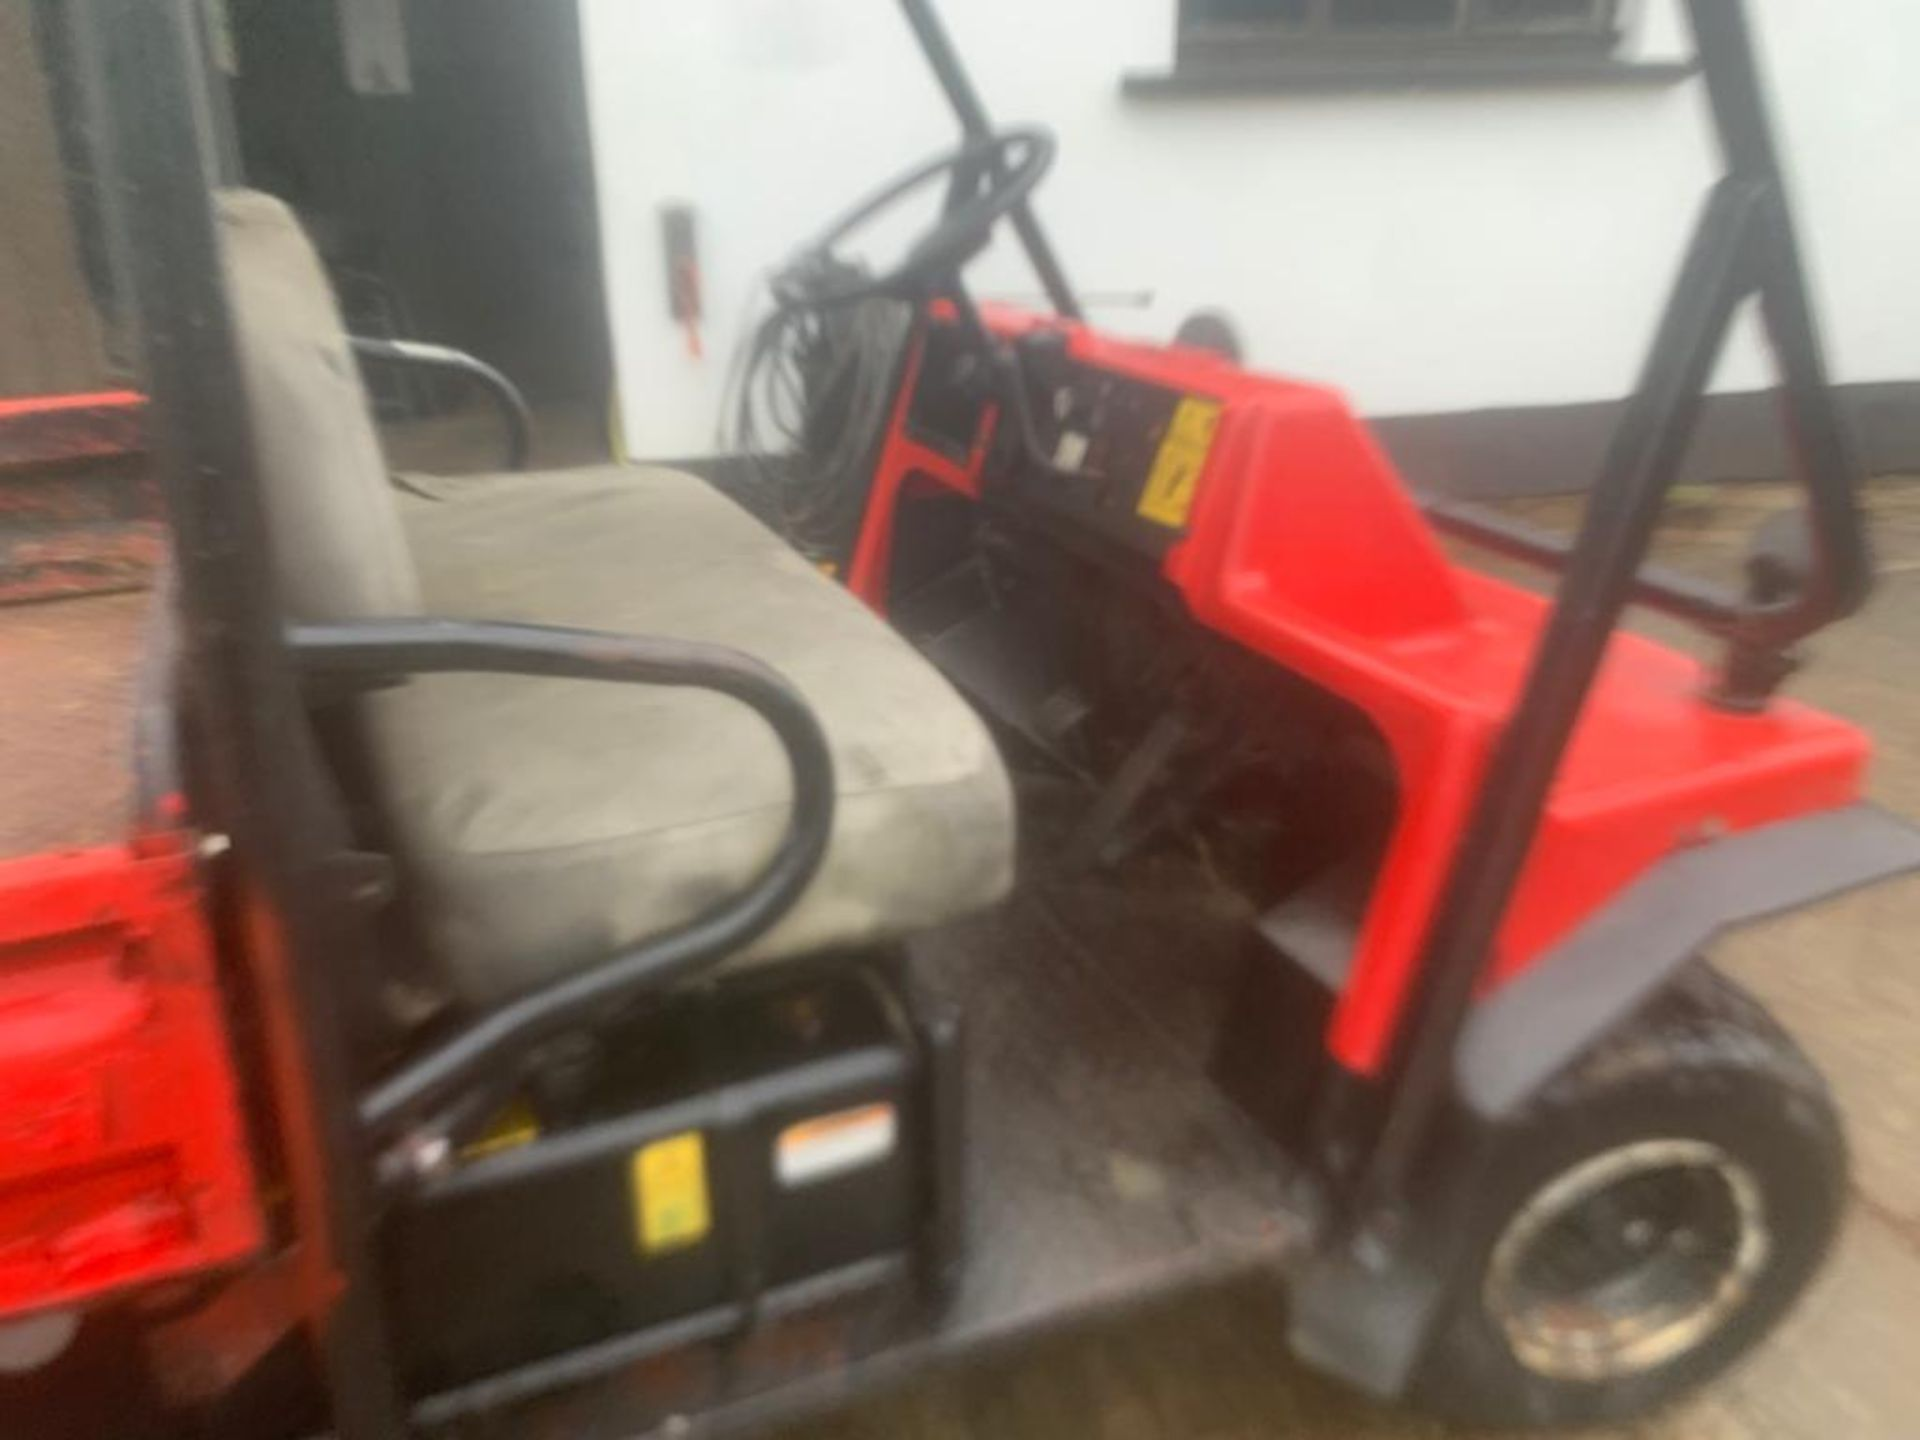 KAWASAKI PETROL MULE, DELIVERY ANYWHERE IN THE UK £300, STARTS, RUNS AND DRIVES *PLUS VAT* - Image 4 of 7